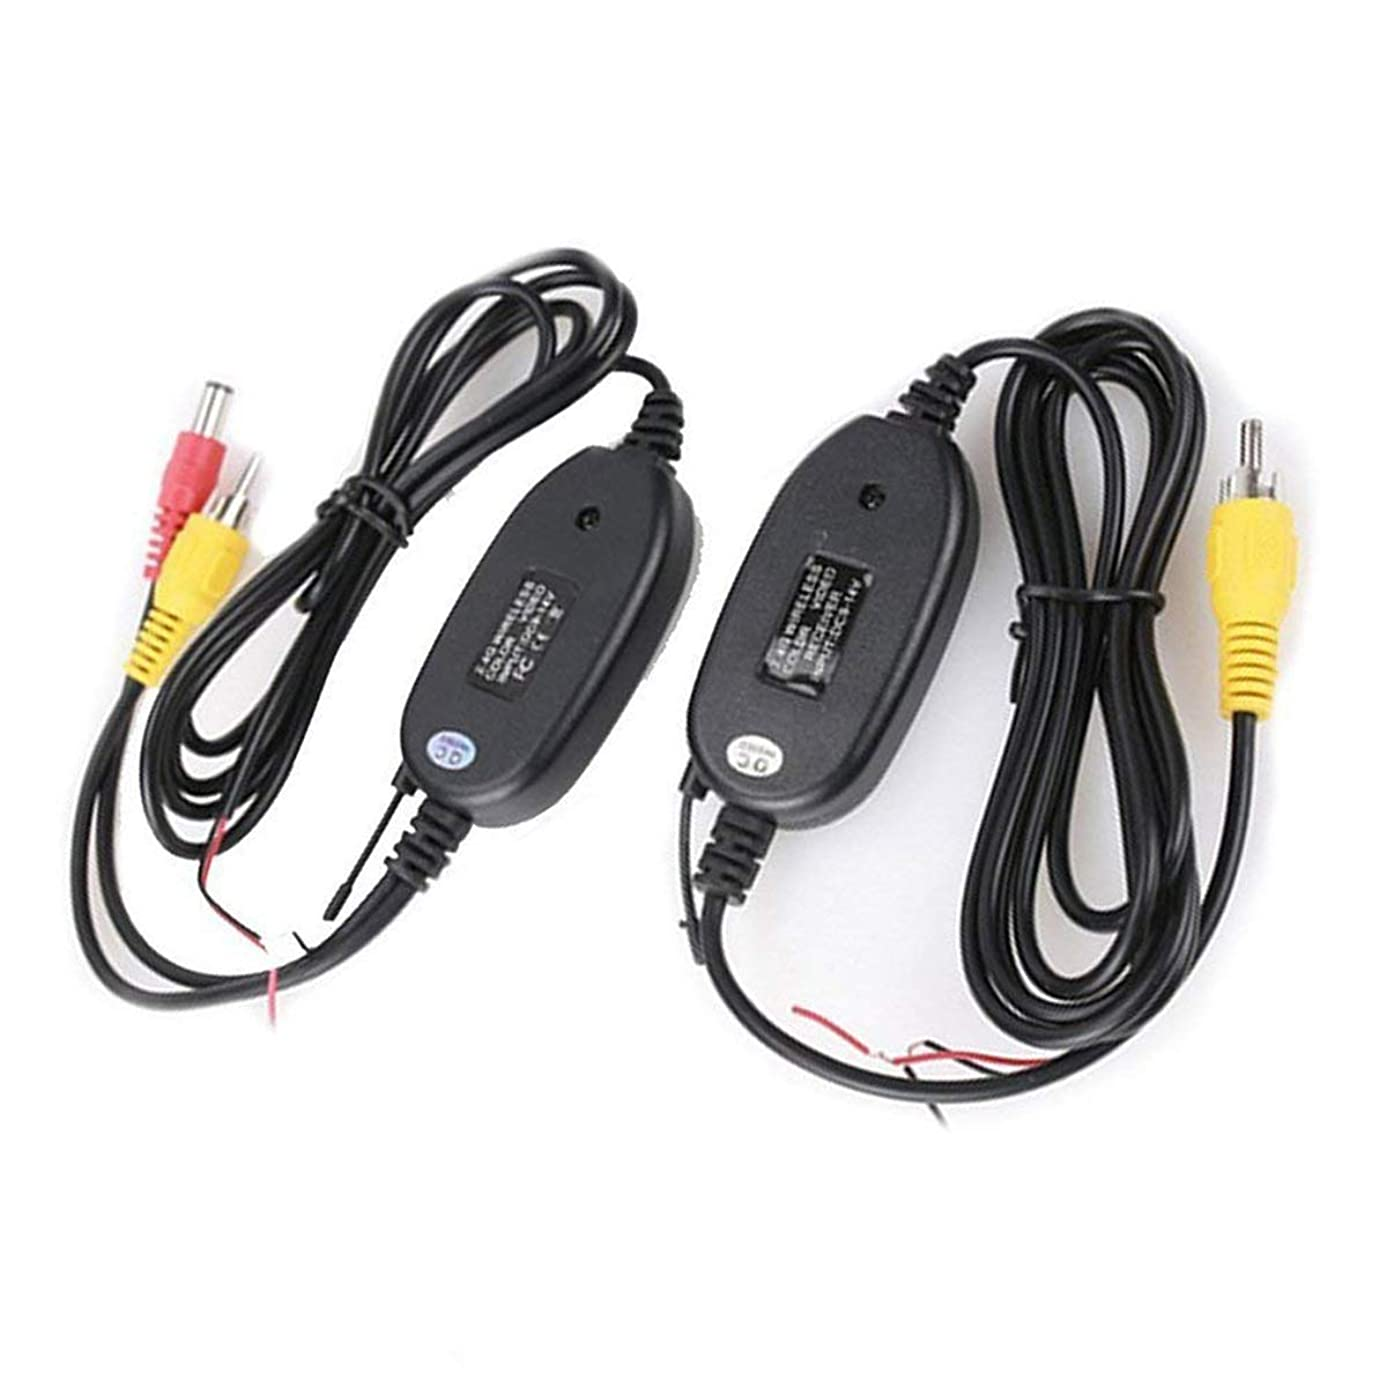 DEALPEAK Car 2.4G Wireless Color Video Transmitter and Receiver for The Vehicle Backup Rearview Camera Front Car Camera